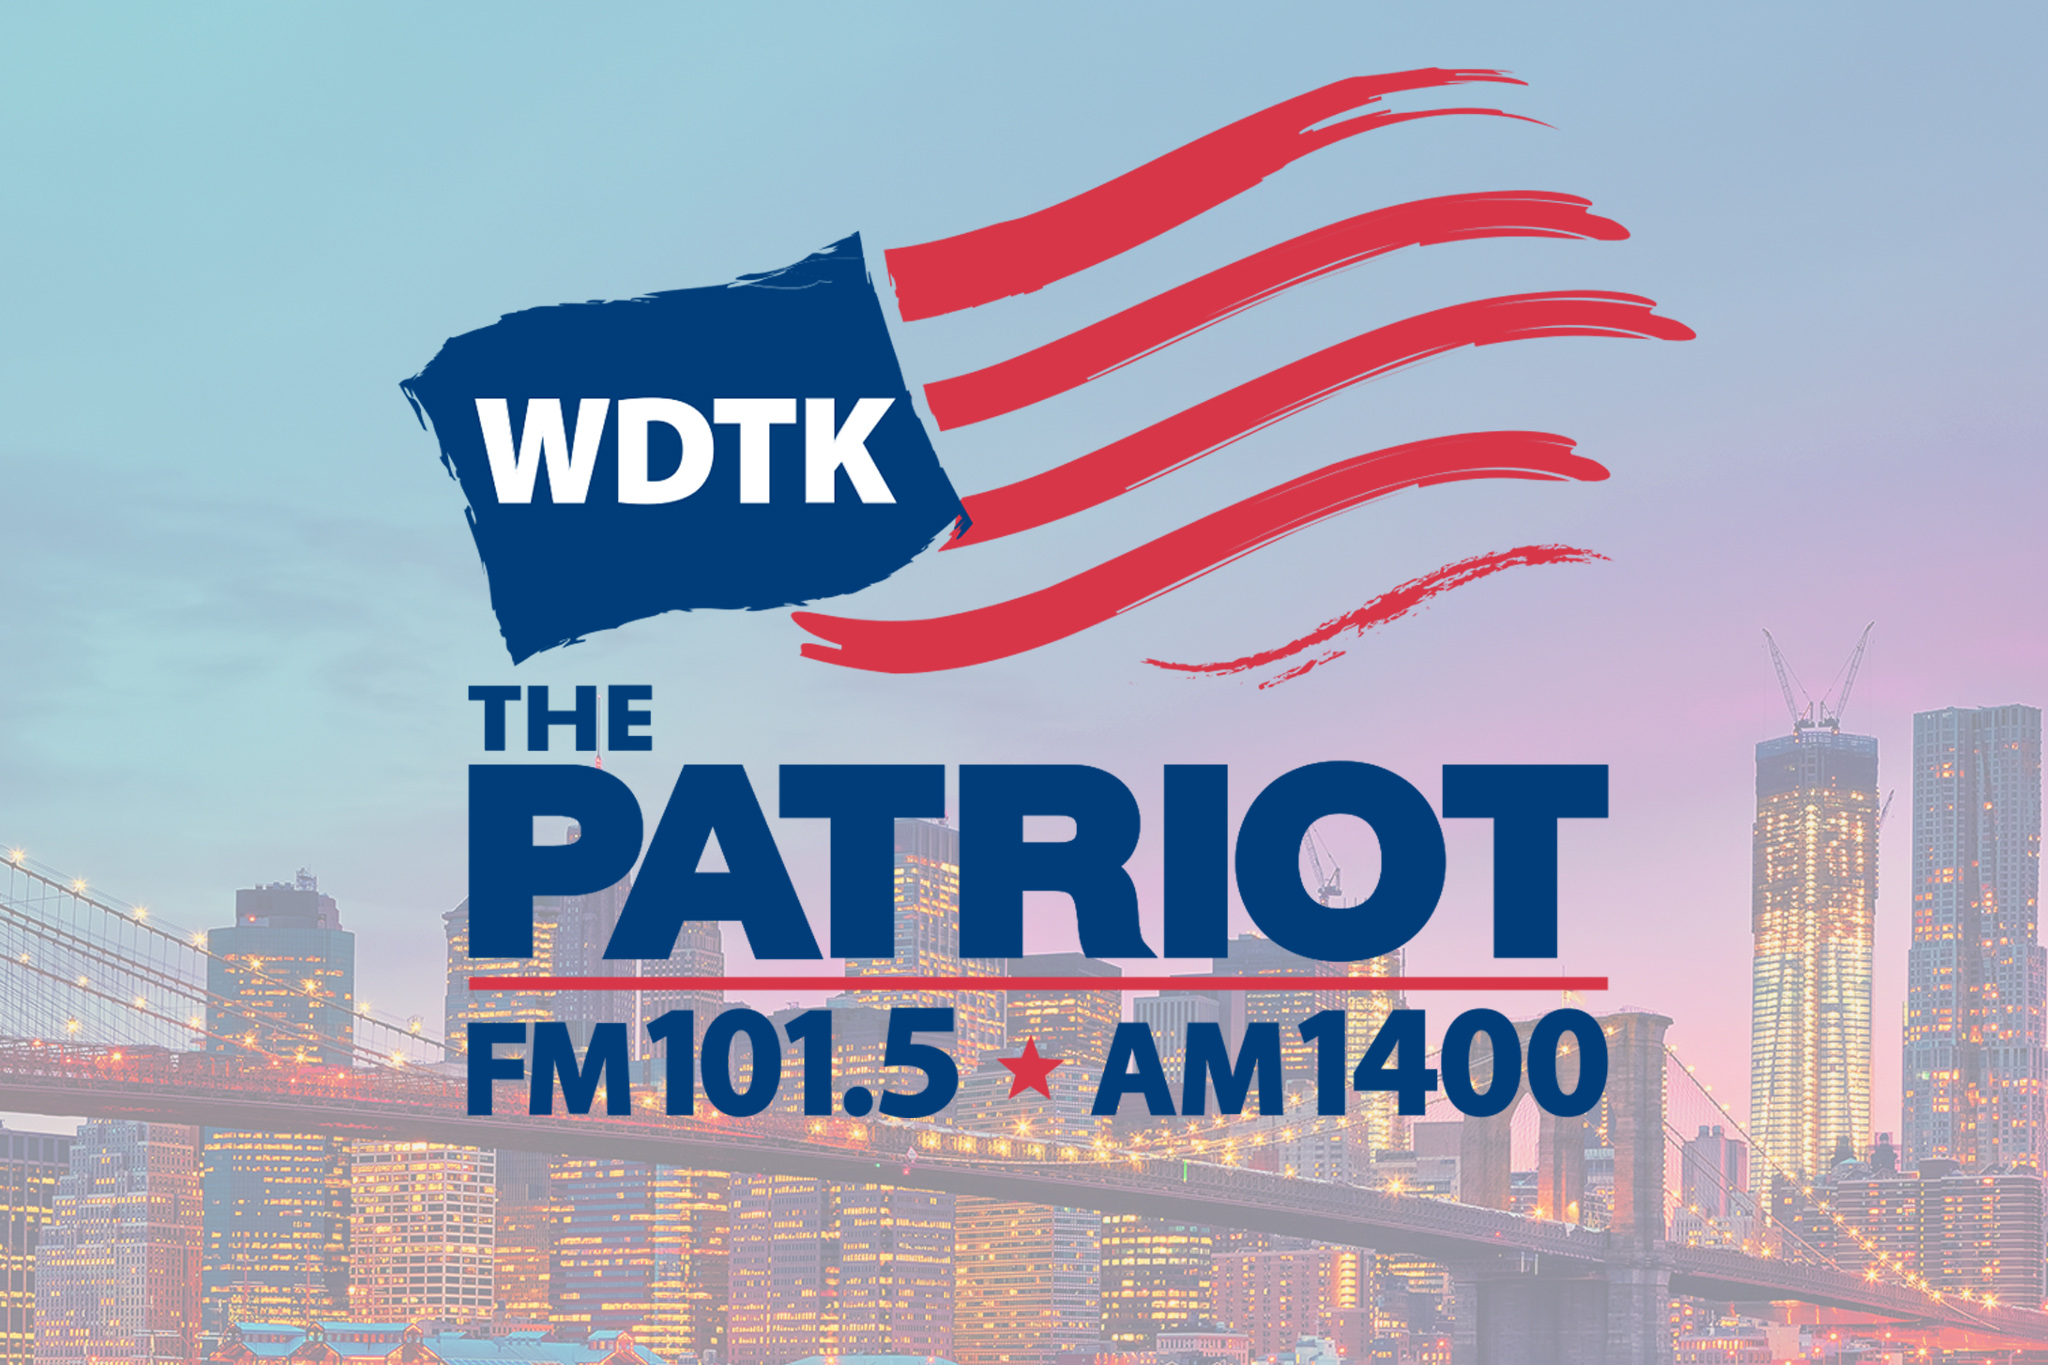 FM 101.5 & AM 1400 The Patriot